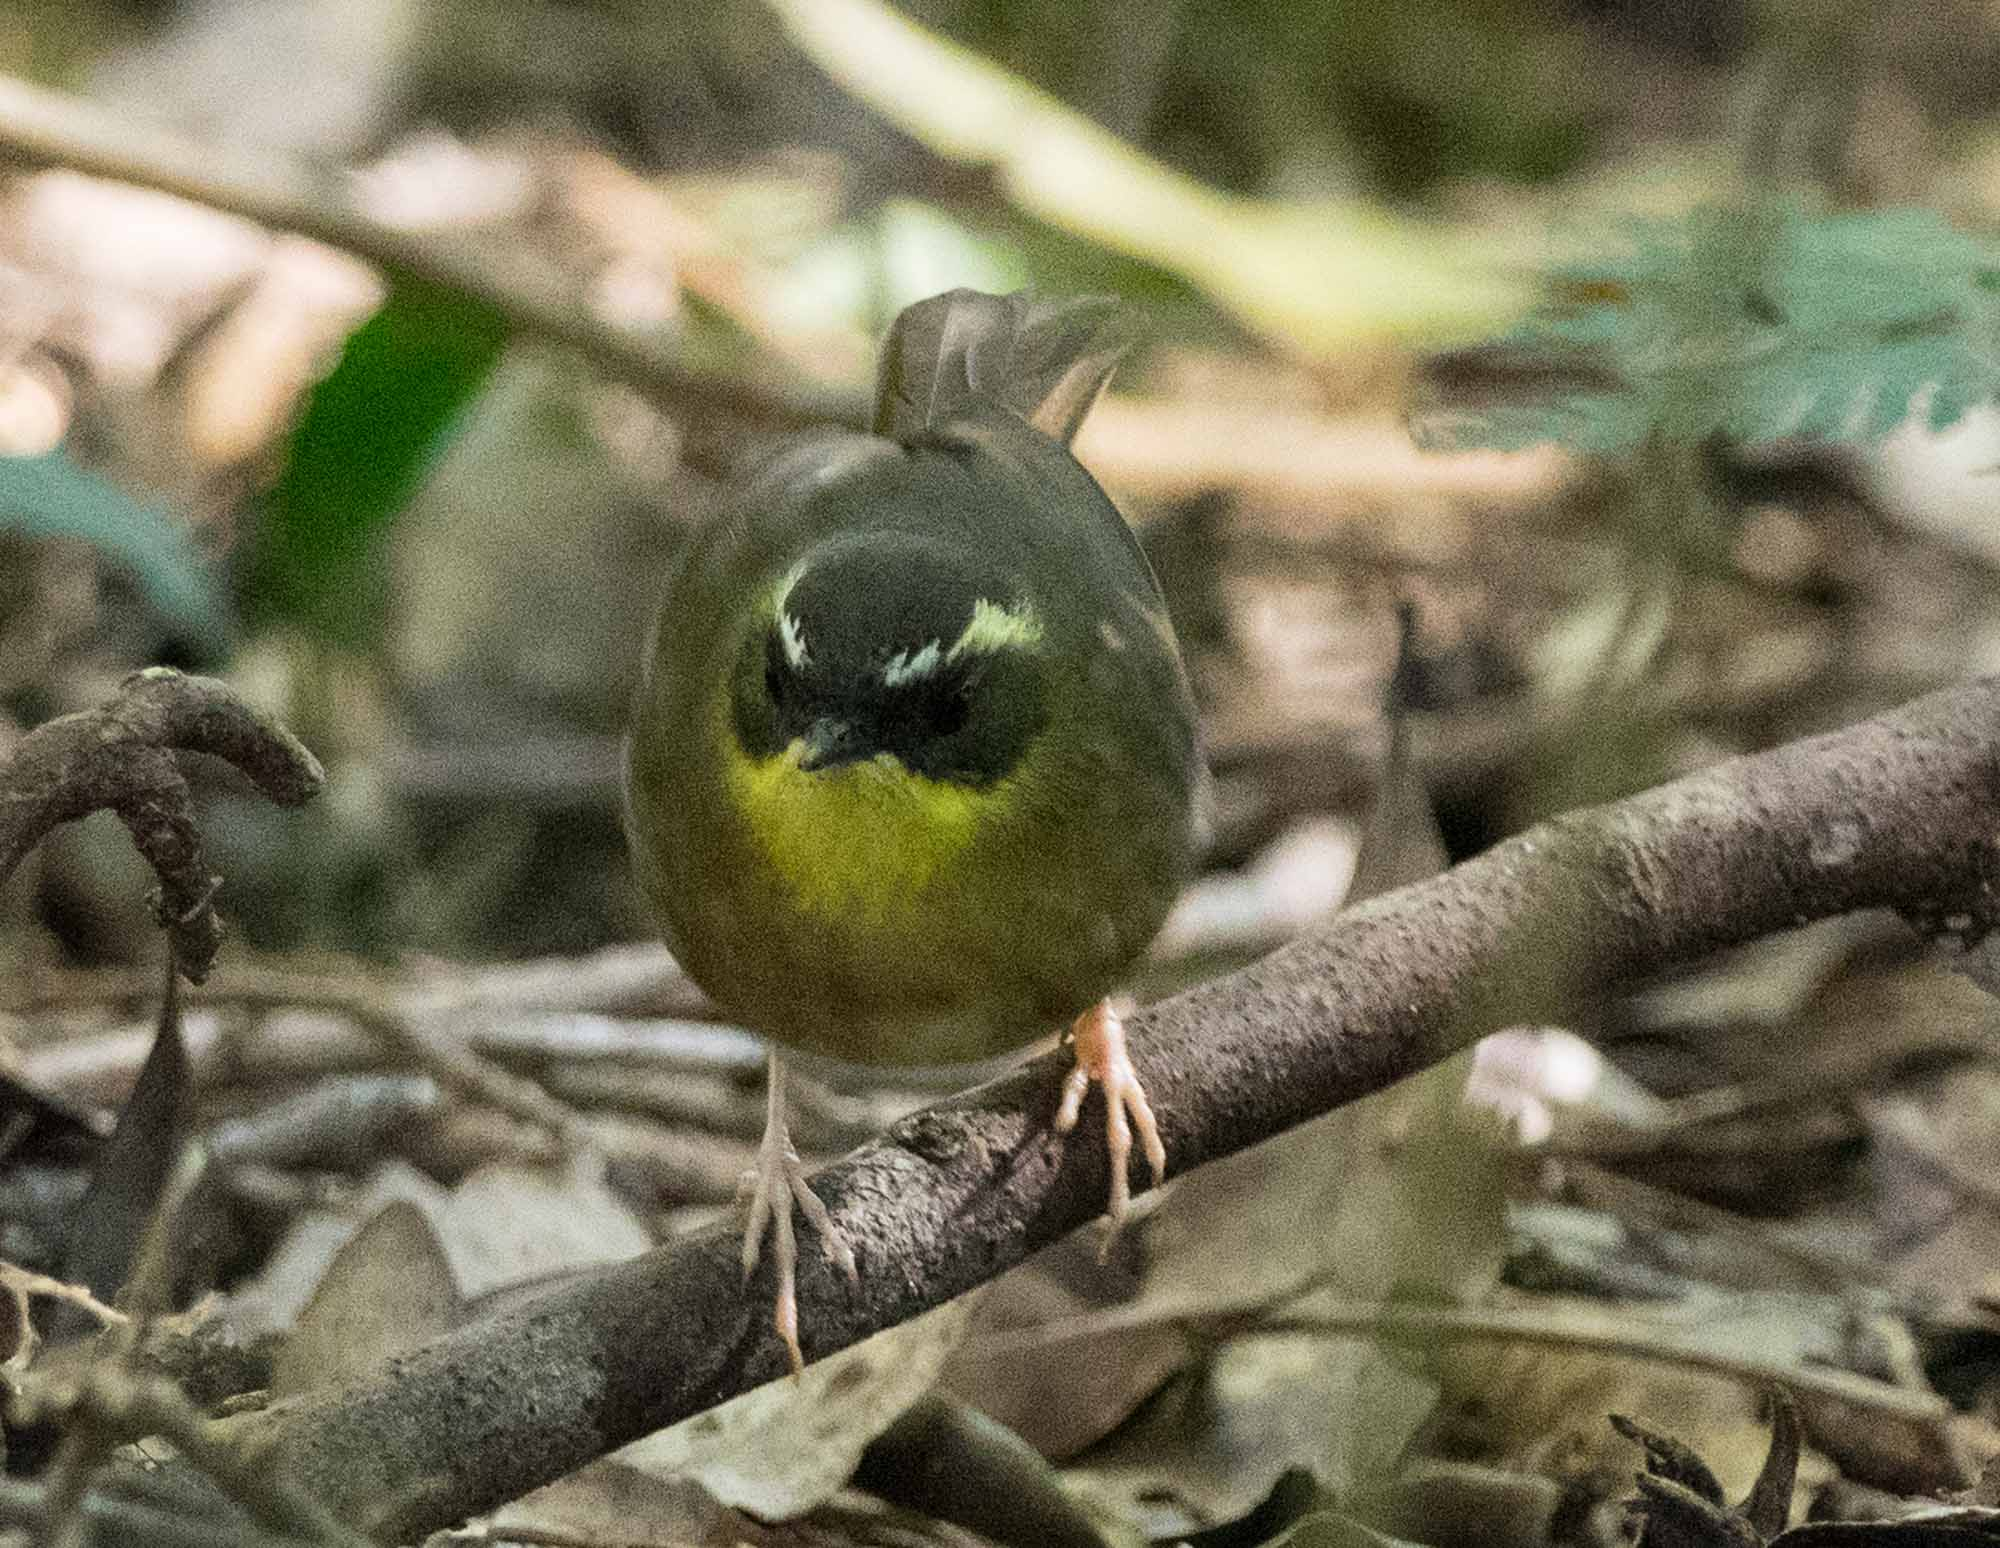 The Yellow-throated Scrubwren shows a different pattern of hunting behaviour to the robins, hopping around on the ground - just like the White-browed Scrubwren.